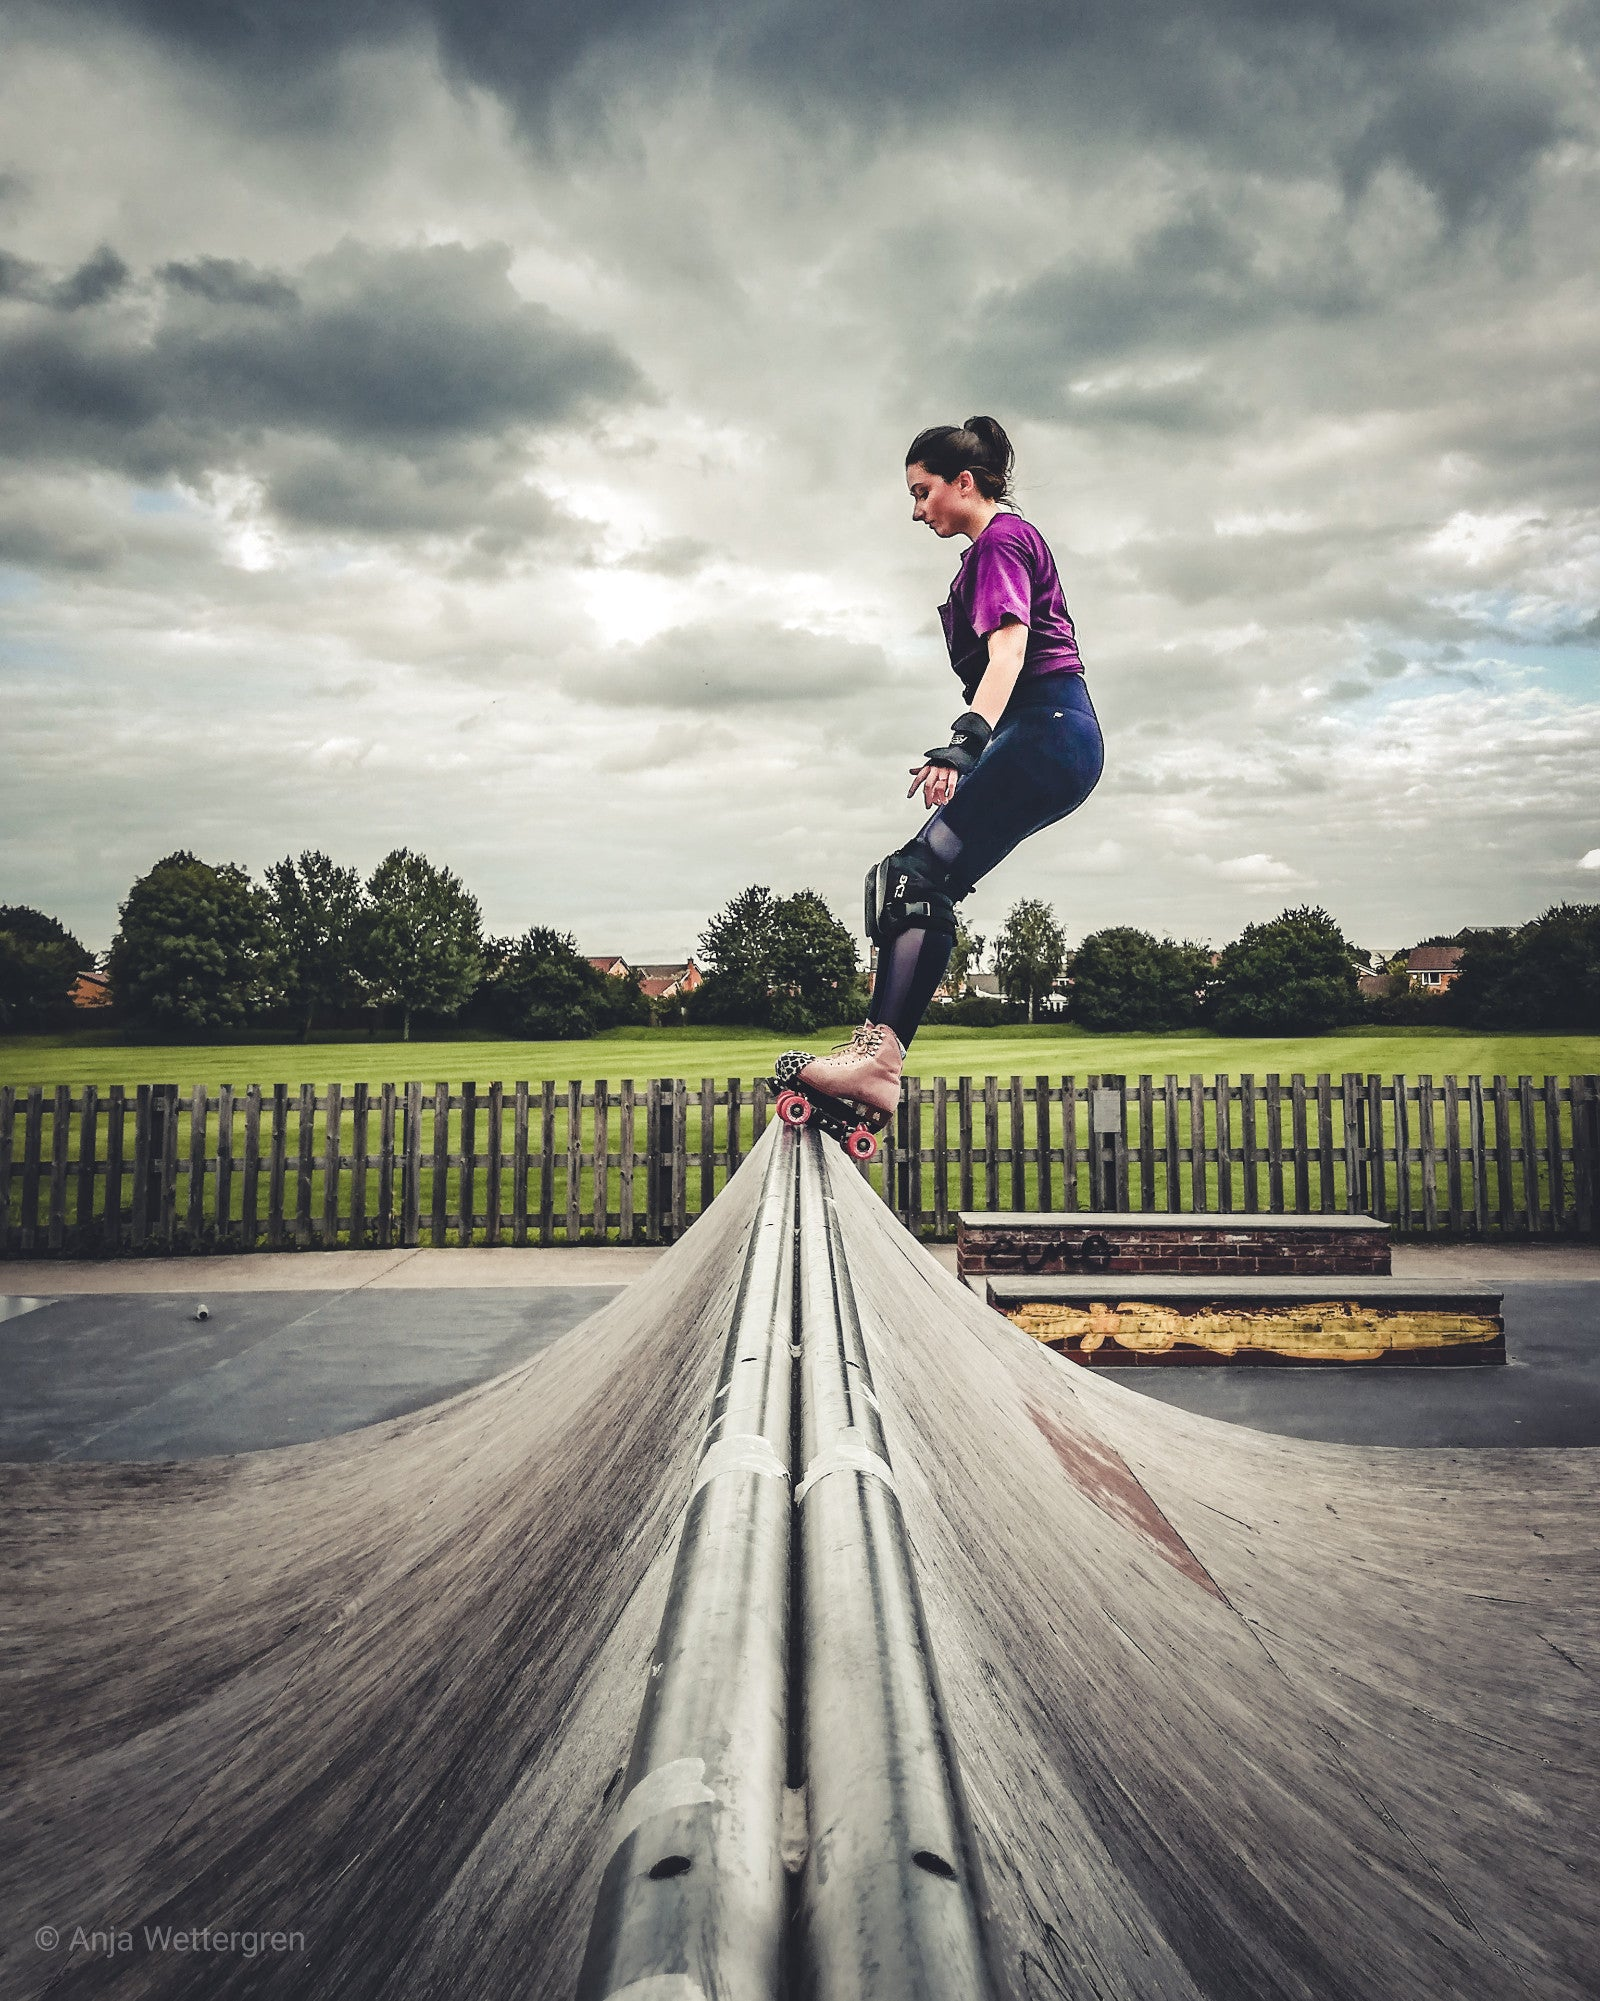 Dramatic skies, symmetrical composition, heightened complementary colours and visual guidance through vignette effect – just a typical day at the skatepark, right?! ©Anja Wettergren